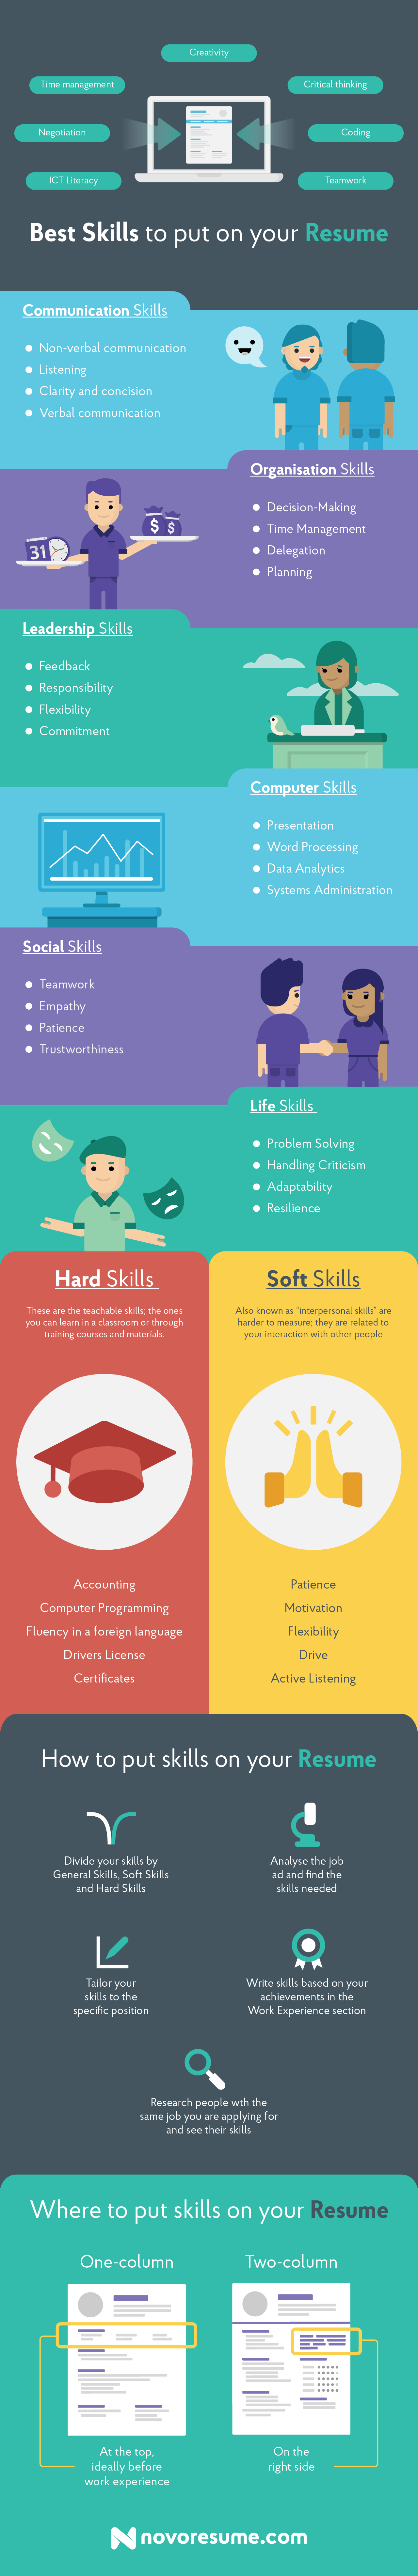 101 Essential Skills To Put On A Resume For Any Job